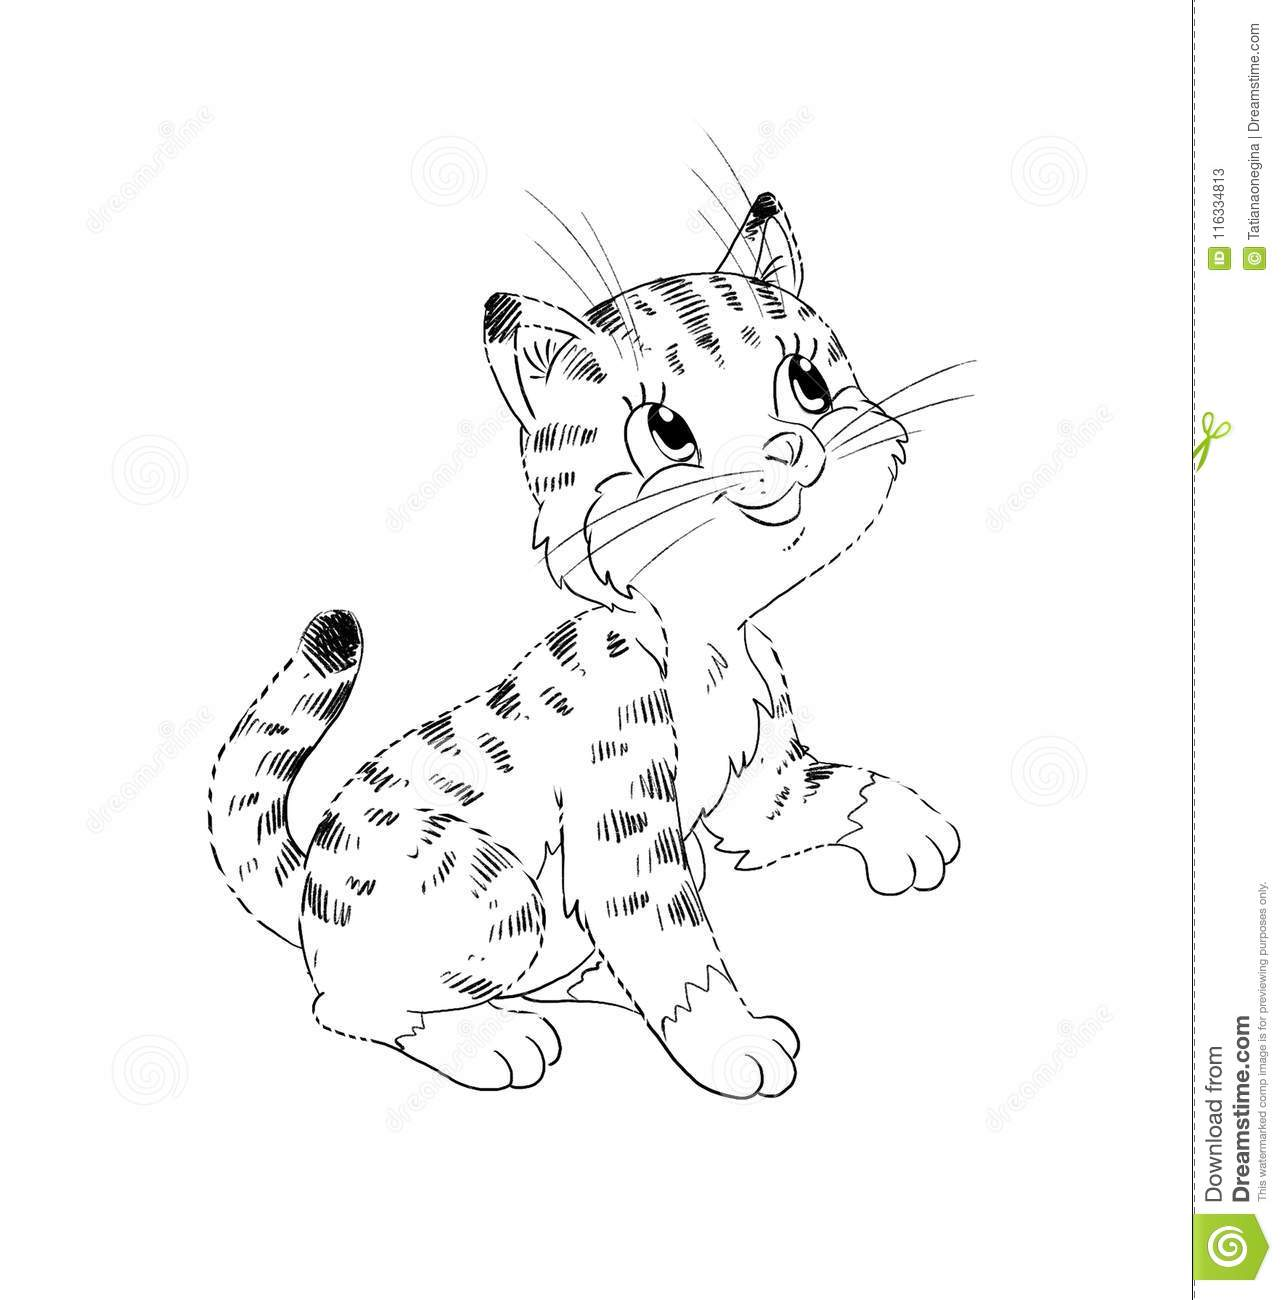 Cartoon Kitten Coloring Page Stock Illustration - Illustration of ...